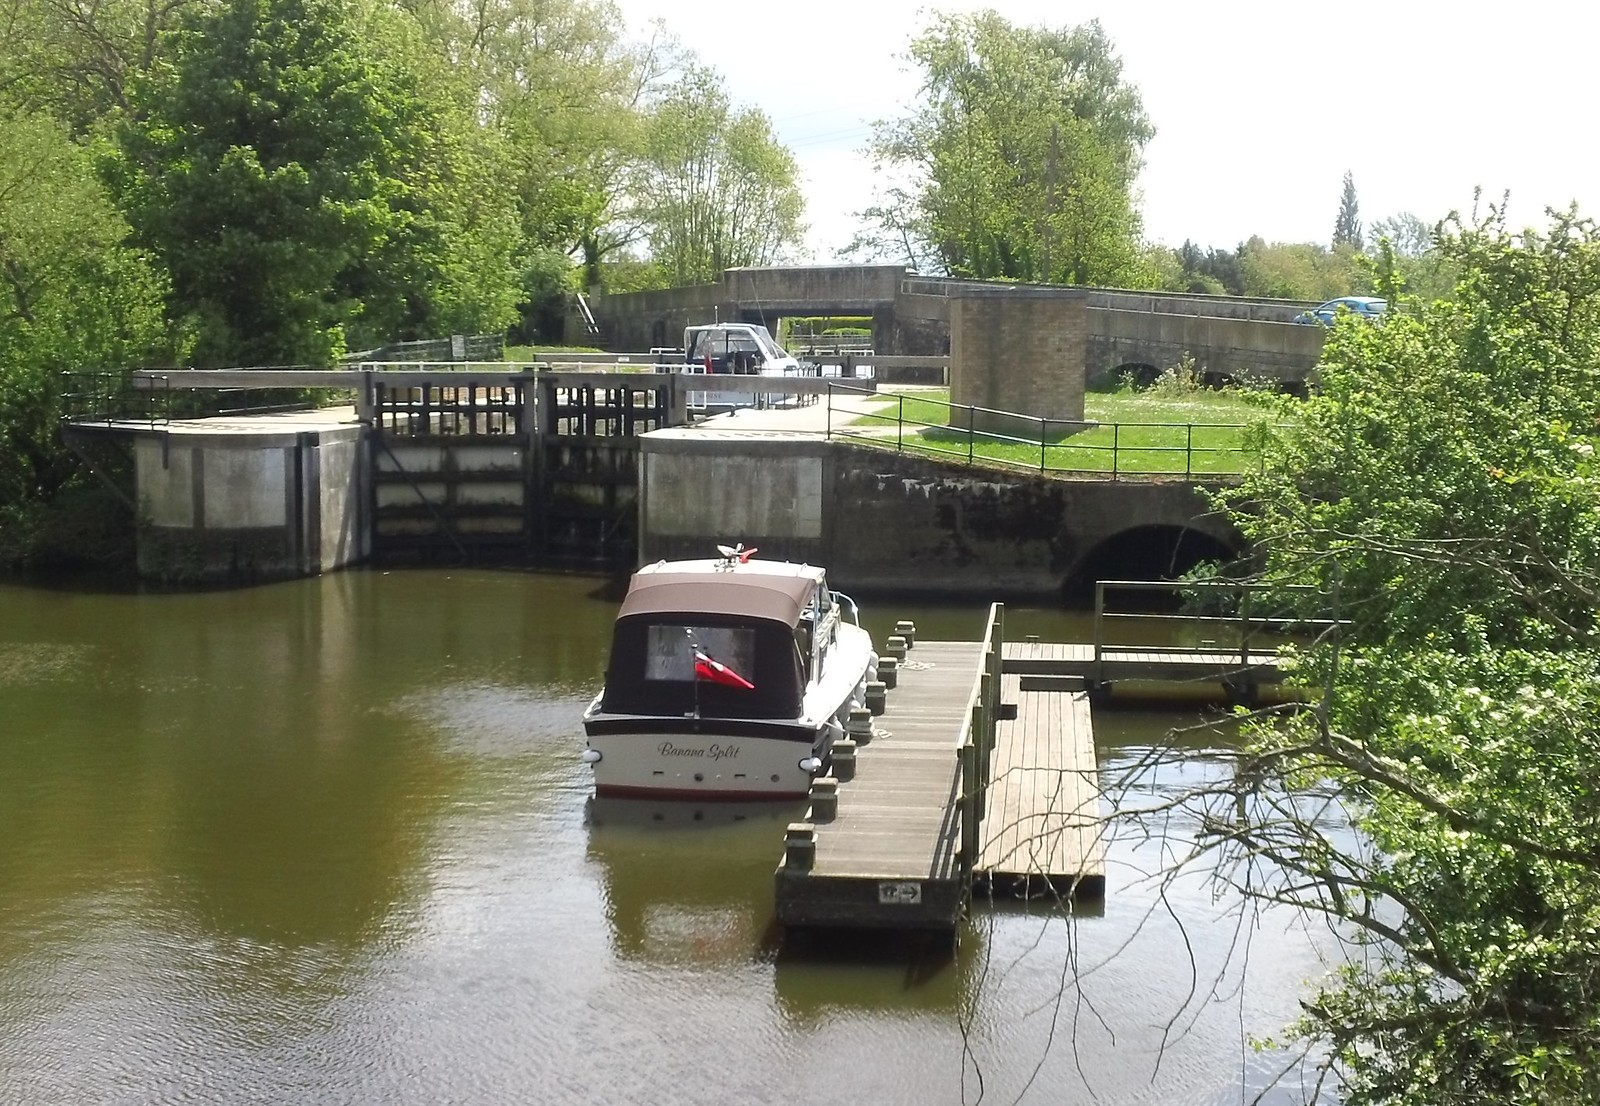 'Banana Split' Yalding lock